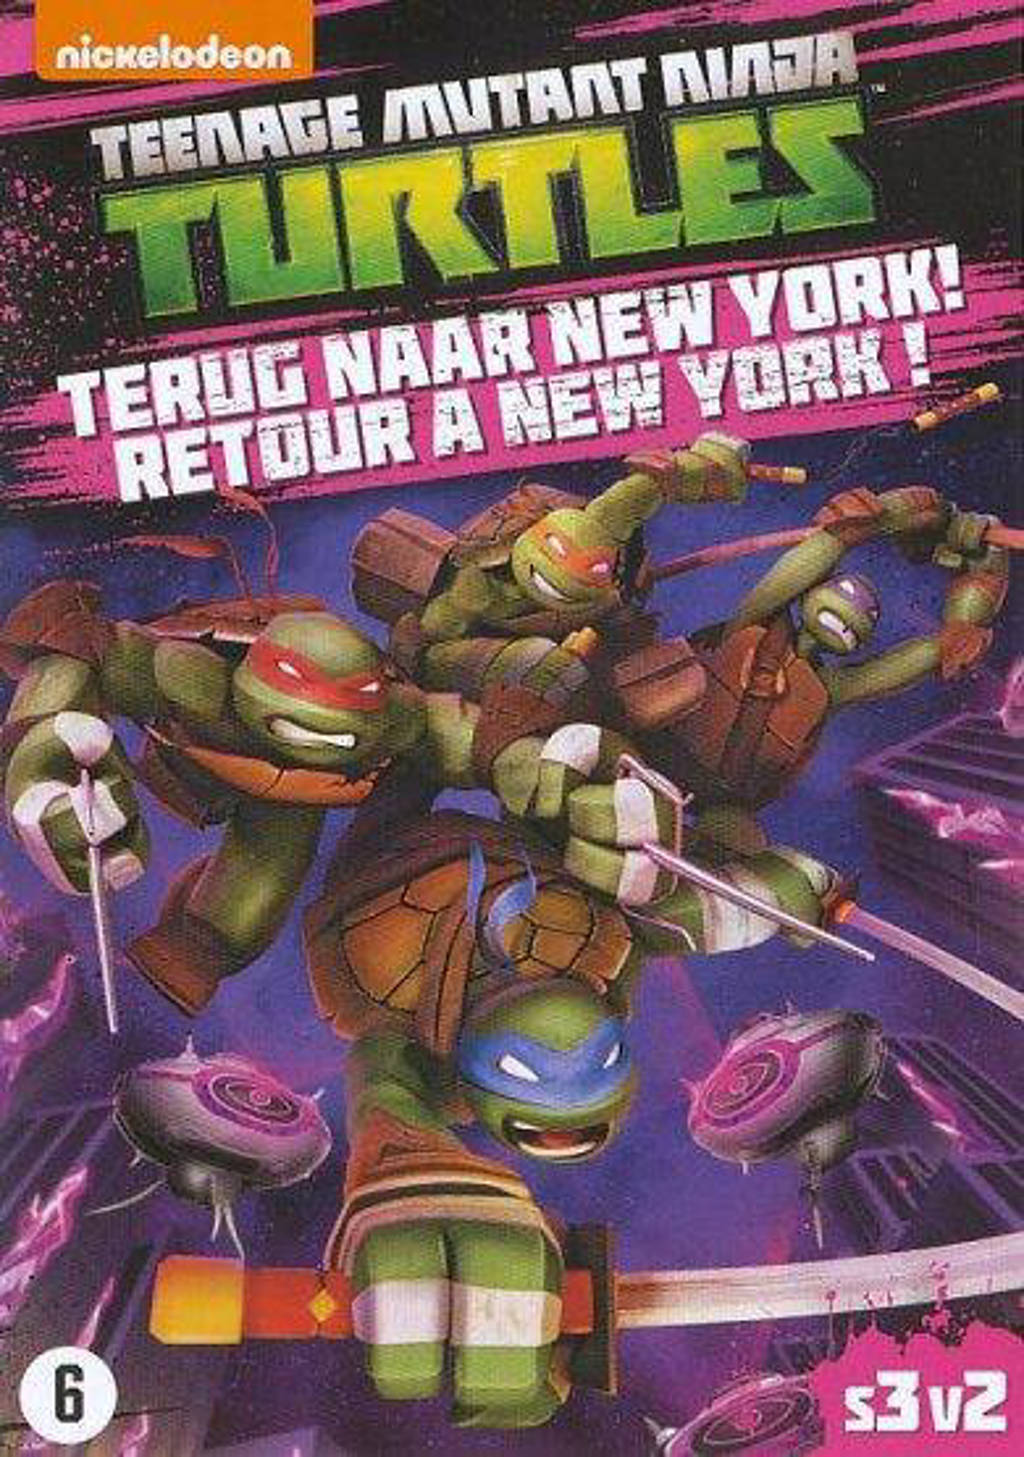 Teenage Mutant Ninja Turtles Seizoen 3 Deel 2 Dvd Wehkamp